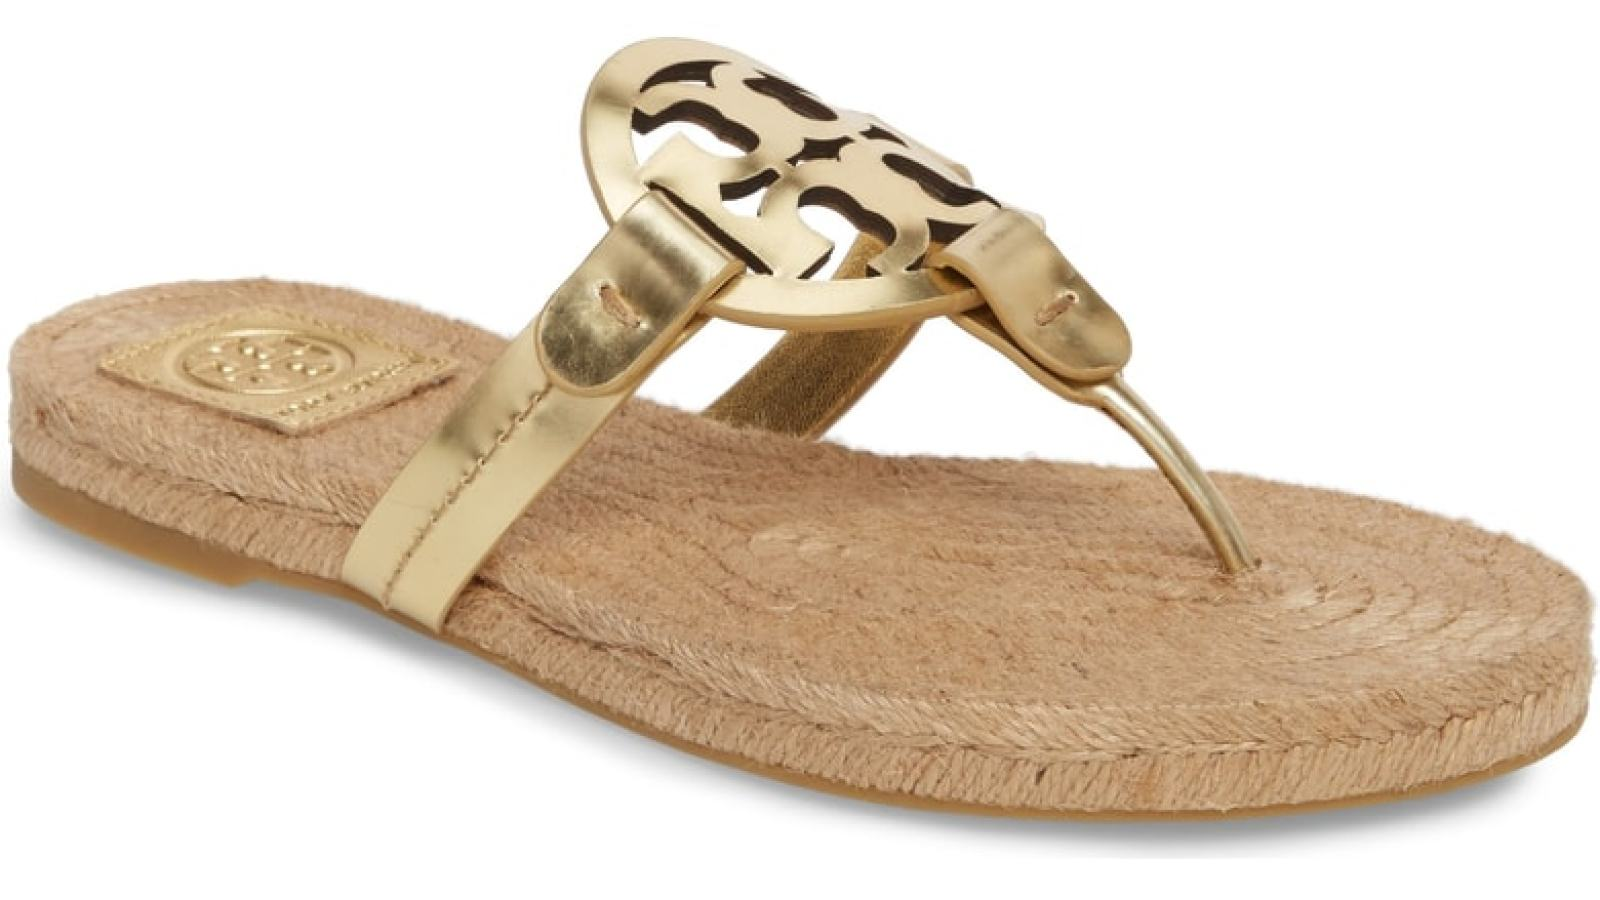 349f060496 So Many Tory Burch Sandals Are On Sale at Nordstrom and We're Already  Stocking Up for Next Summer